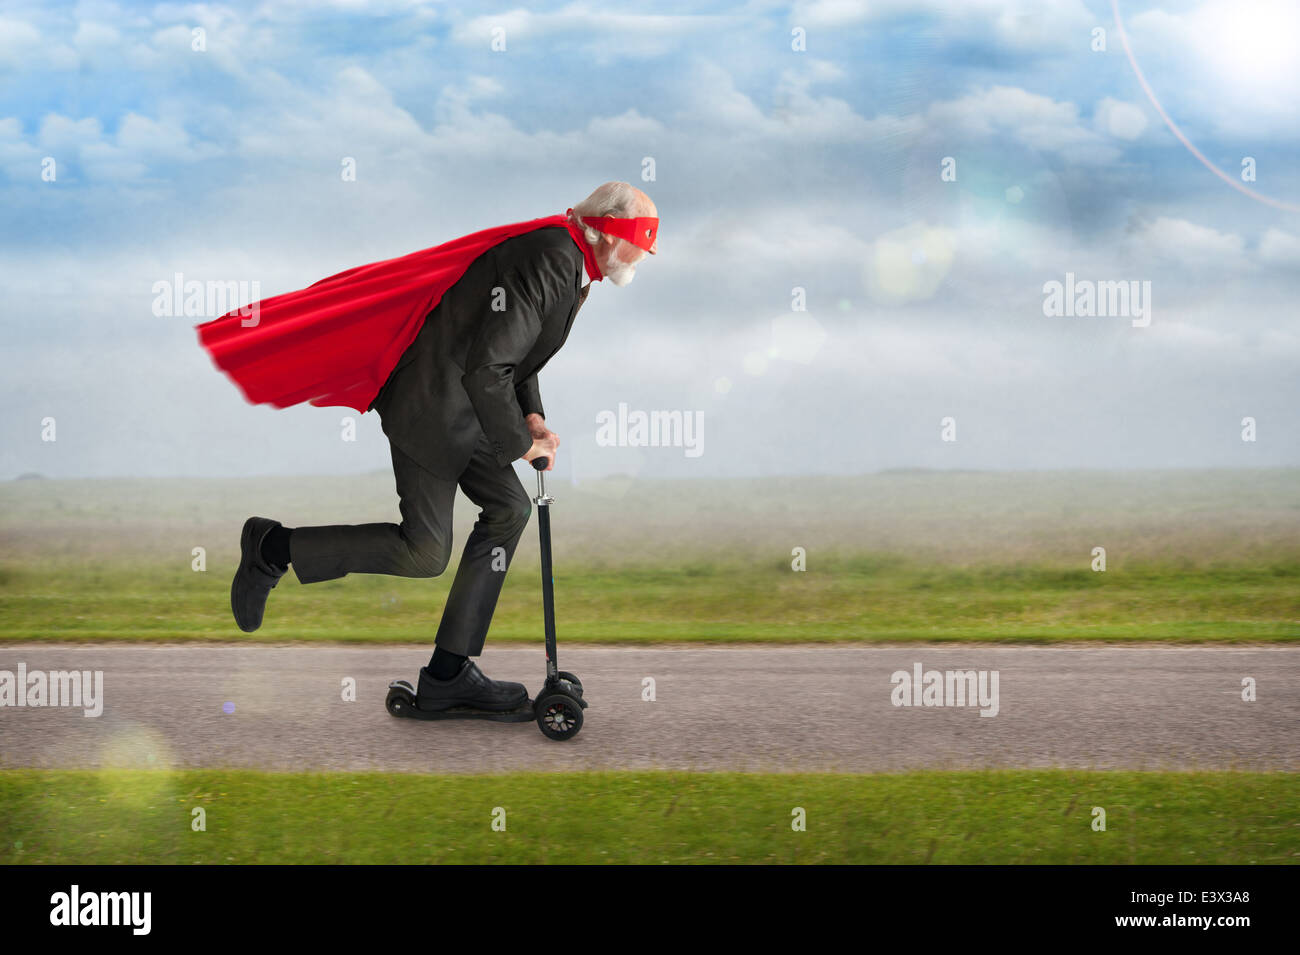 senior superhero man riding a scooter wearing a red cape and mask - Stock Image